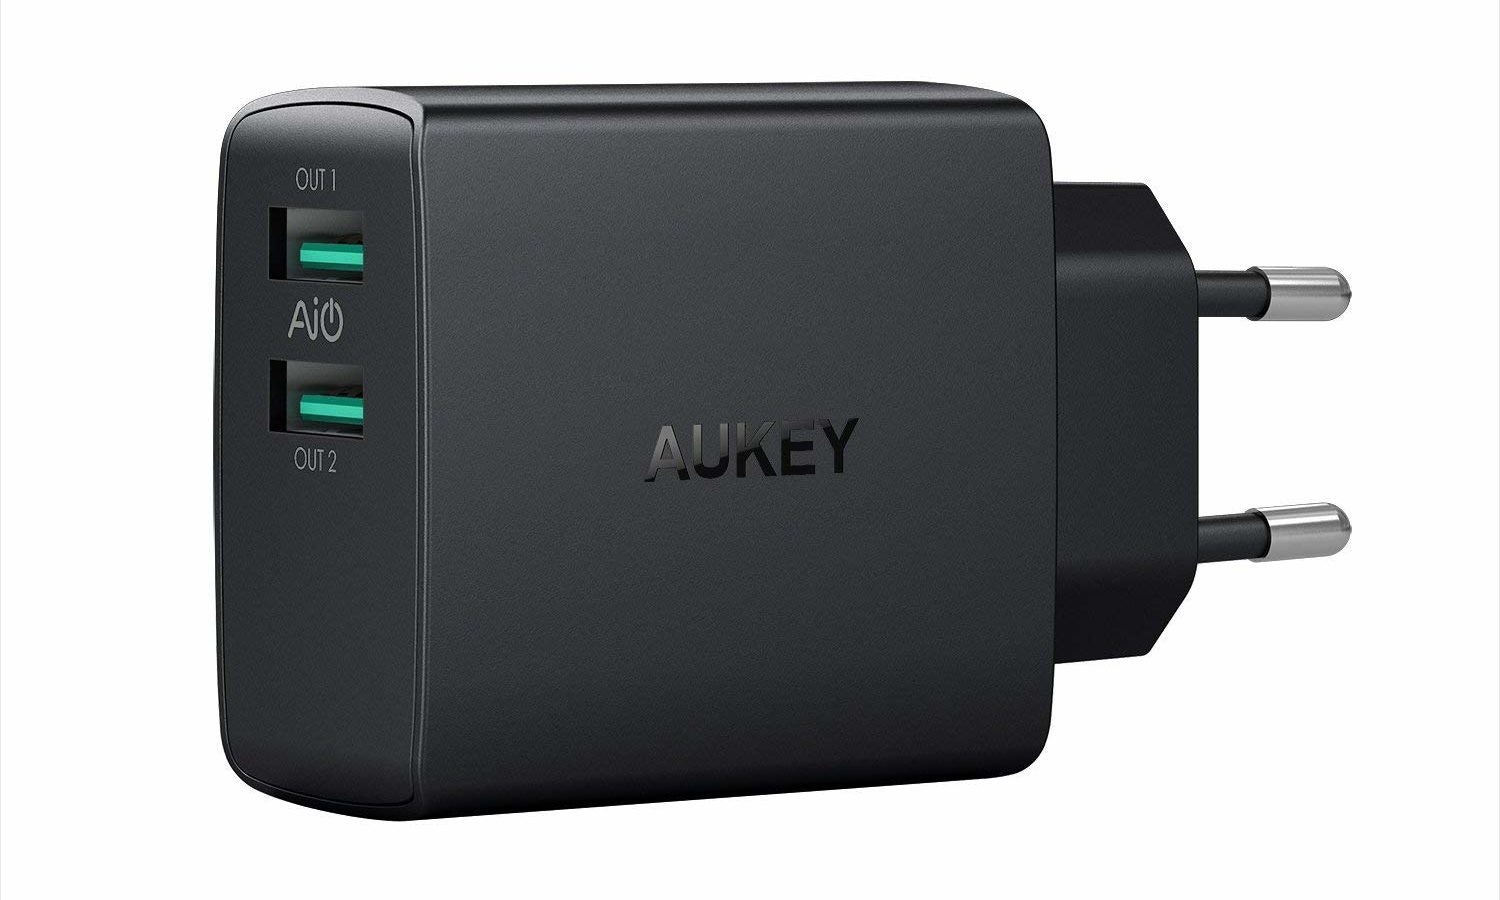 aukey quick charge 3 0 usb ladeger t f r 5 99 bei amazon. Black Bedroom Furniture Sets. Home Design Ideas